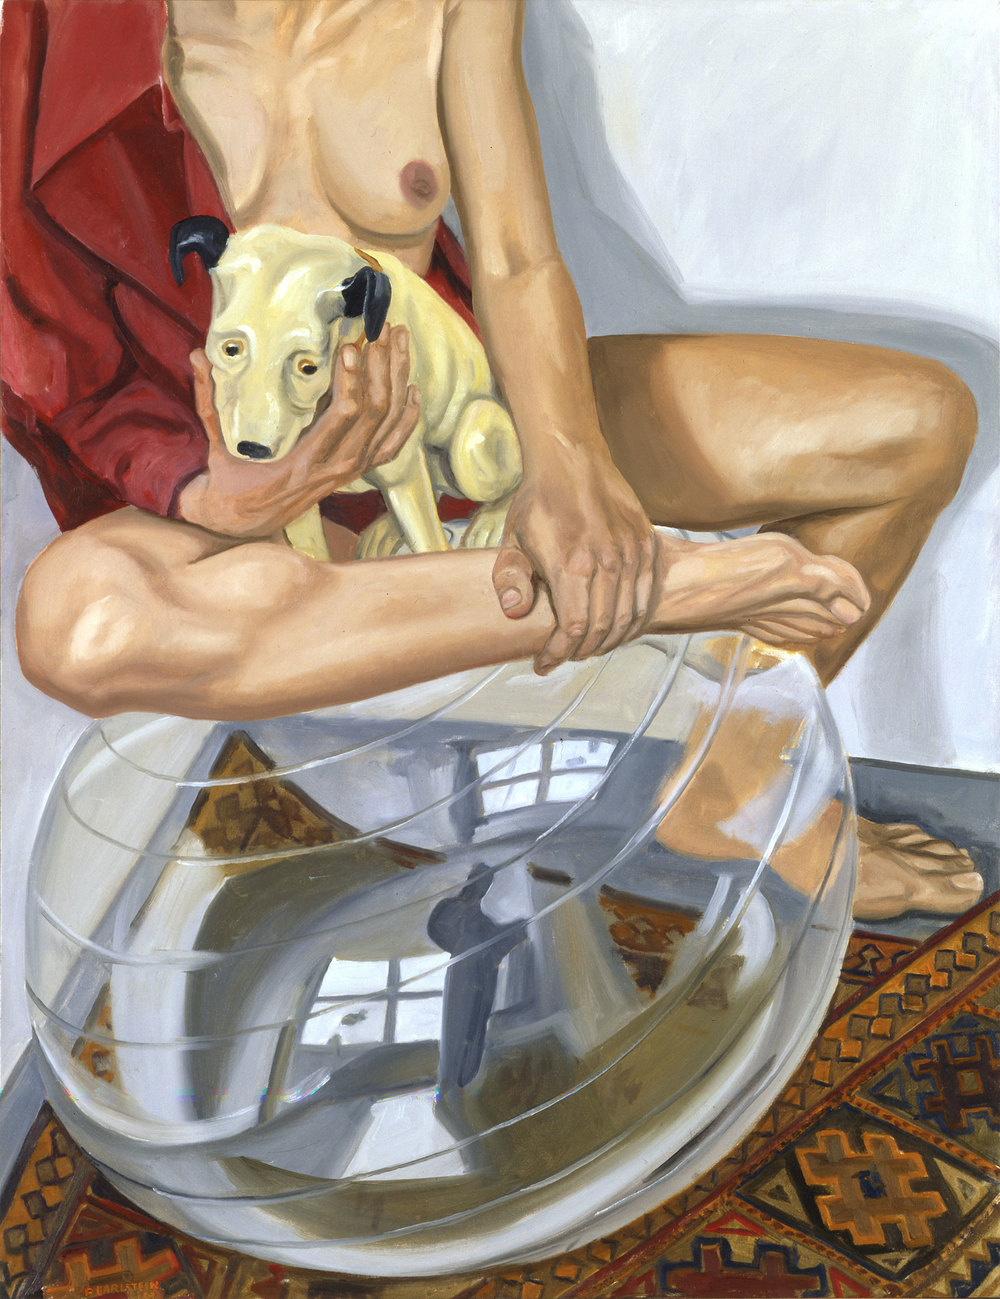 MALE AND FEMALE NUDE WITH HIS MASTER'S VOICE  AND EXERCISE BALL   ,   2003   Oil on canvas   48 x 60 inches